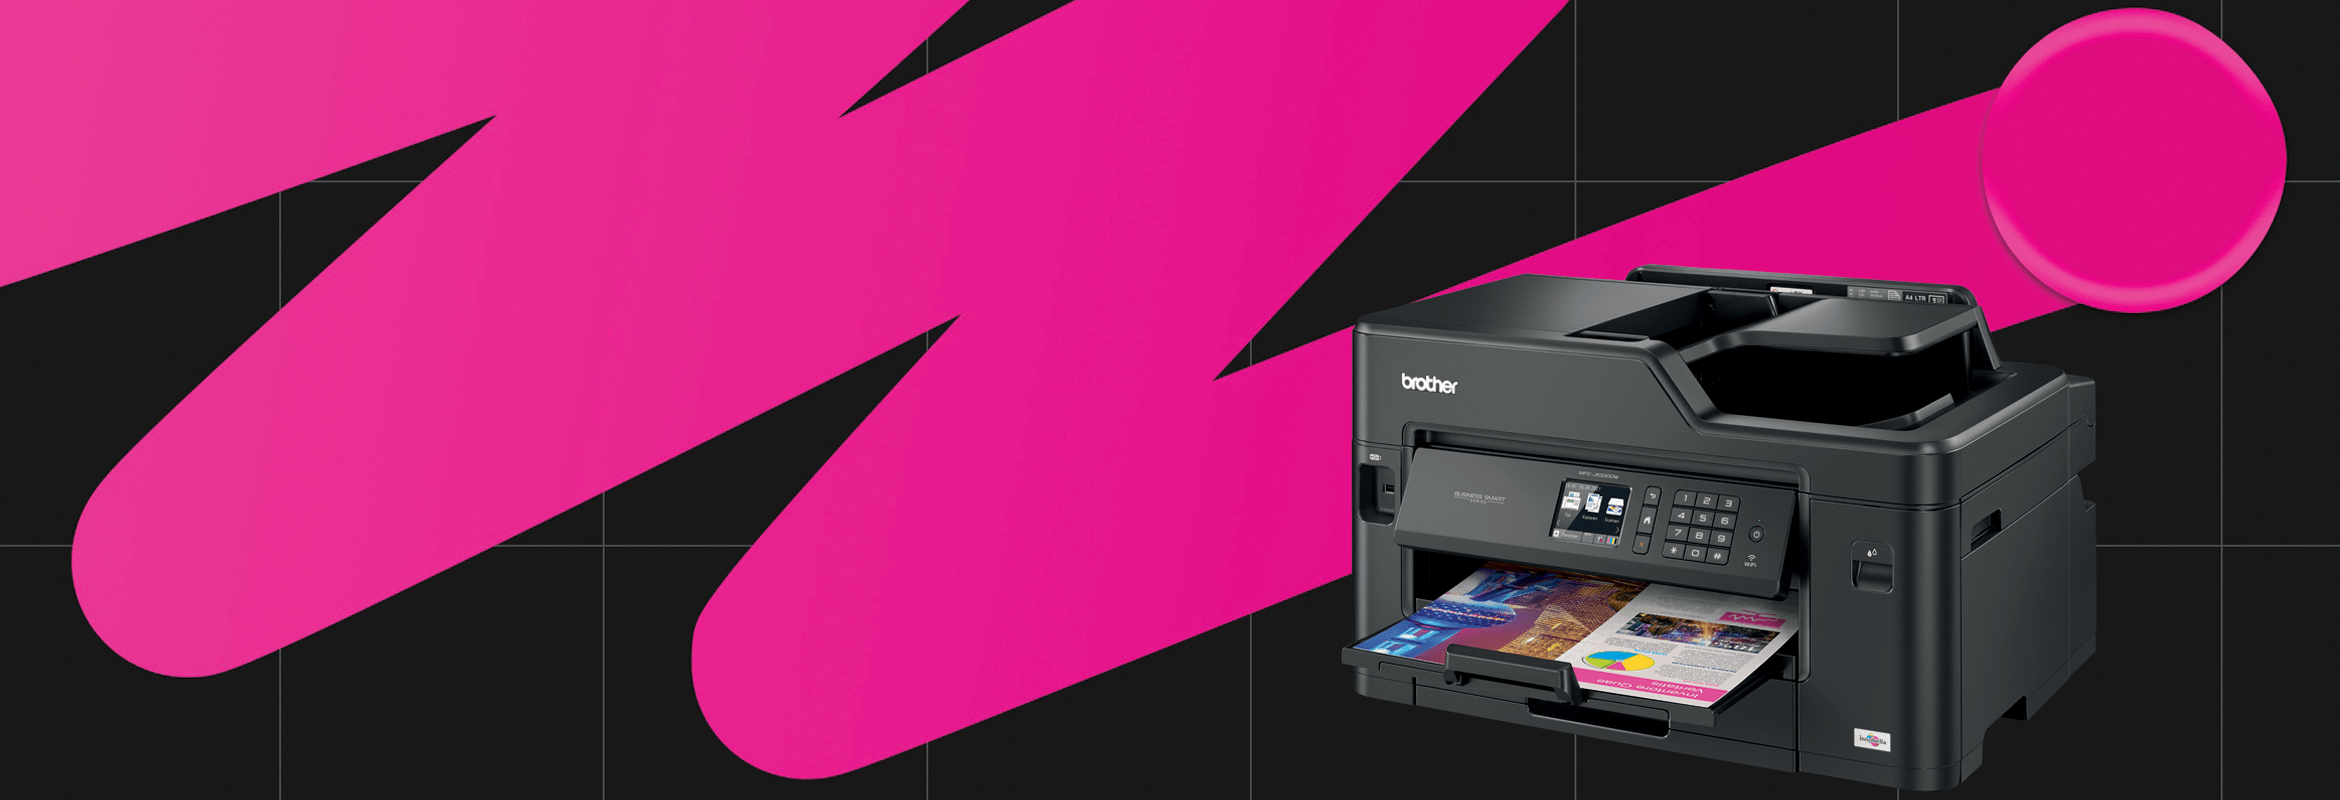 Brother's Business Smart printer range